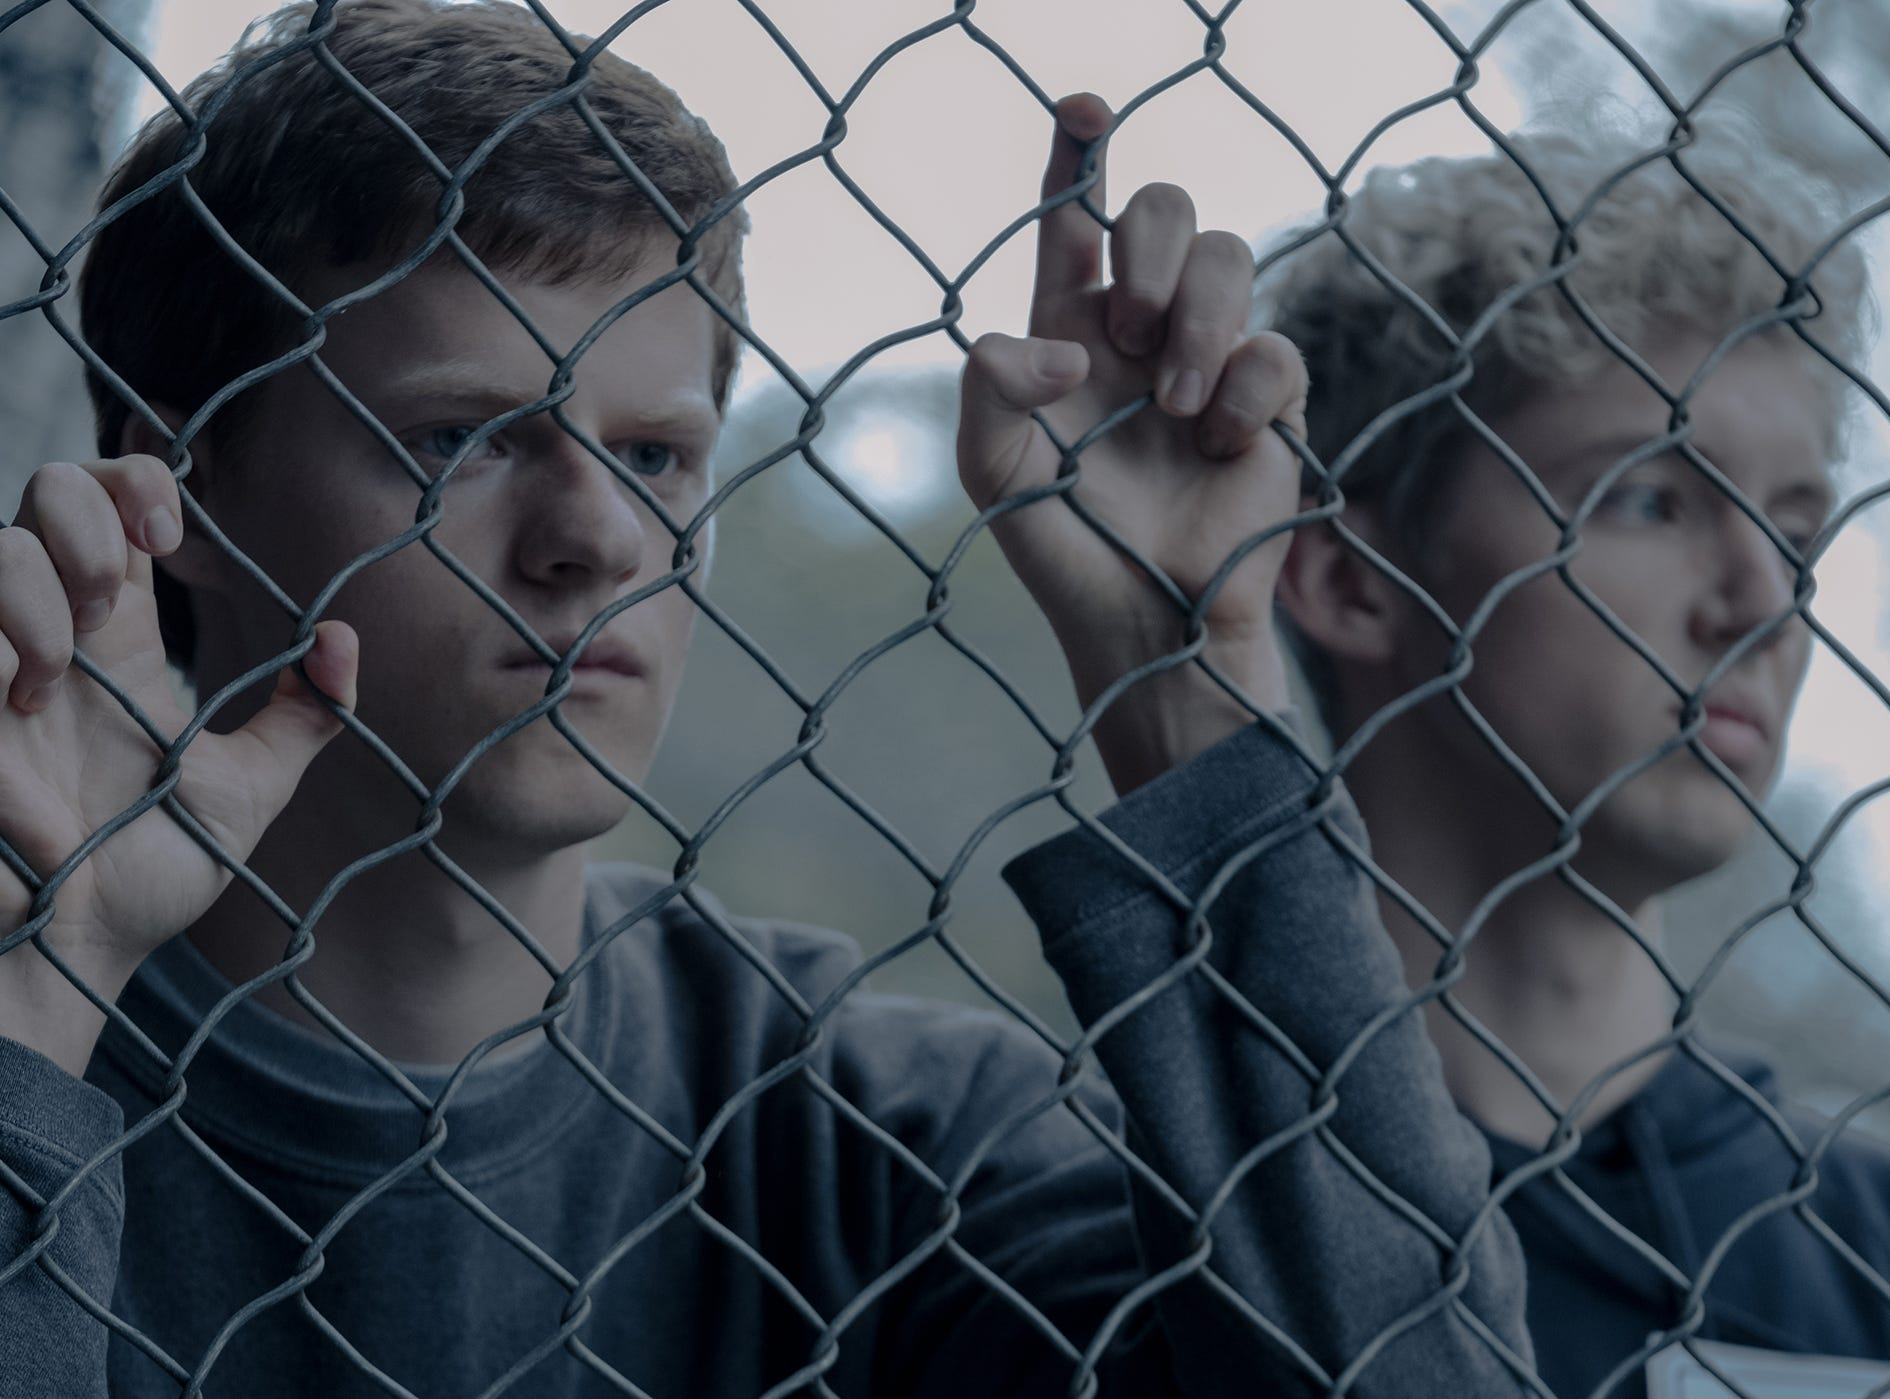 Lucas Hedges stars as Jared and Troye Sivan as Gary in Joel Edgerton's BOY ERASED, a Focus Features release.